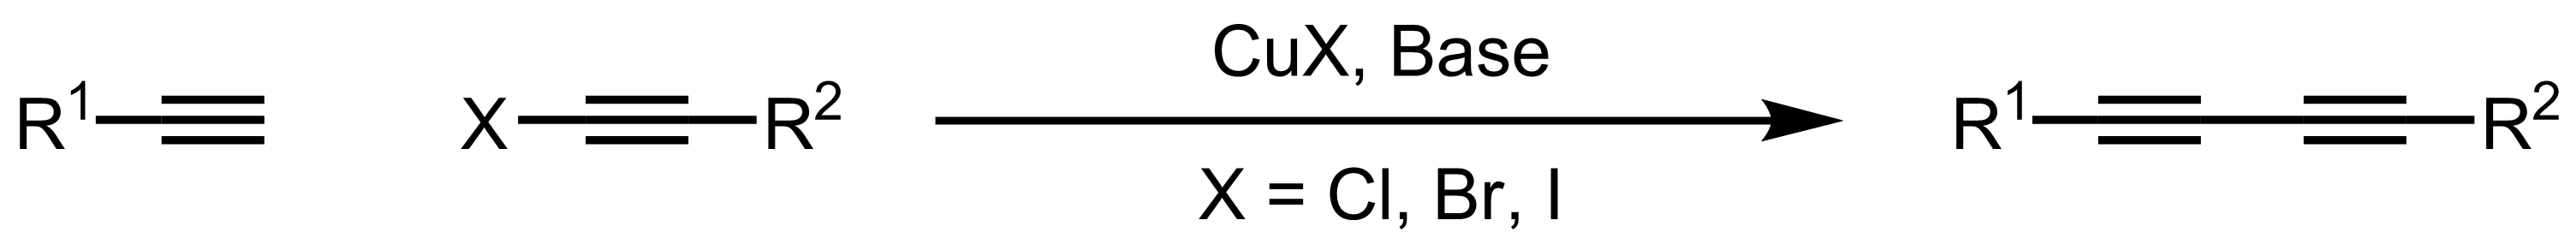 Schematic representation of the Cadiot-Chodkiewicz Coupling.